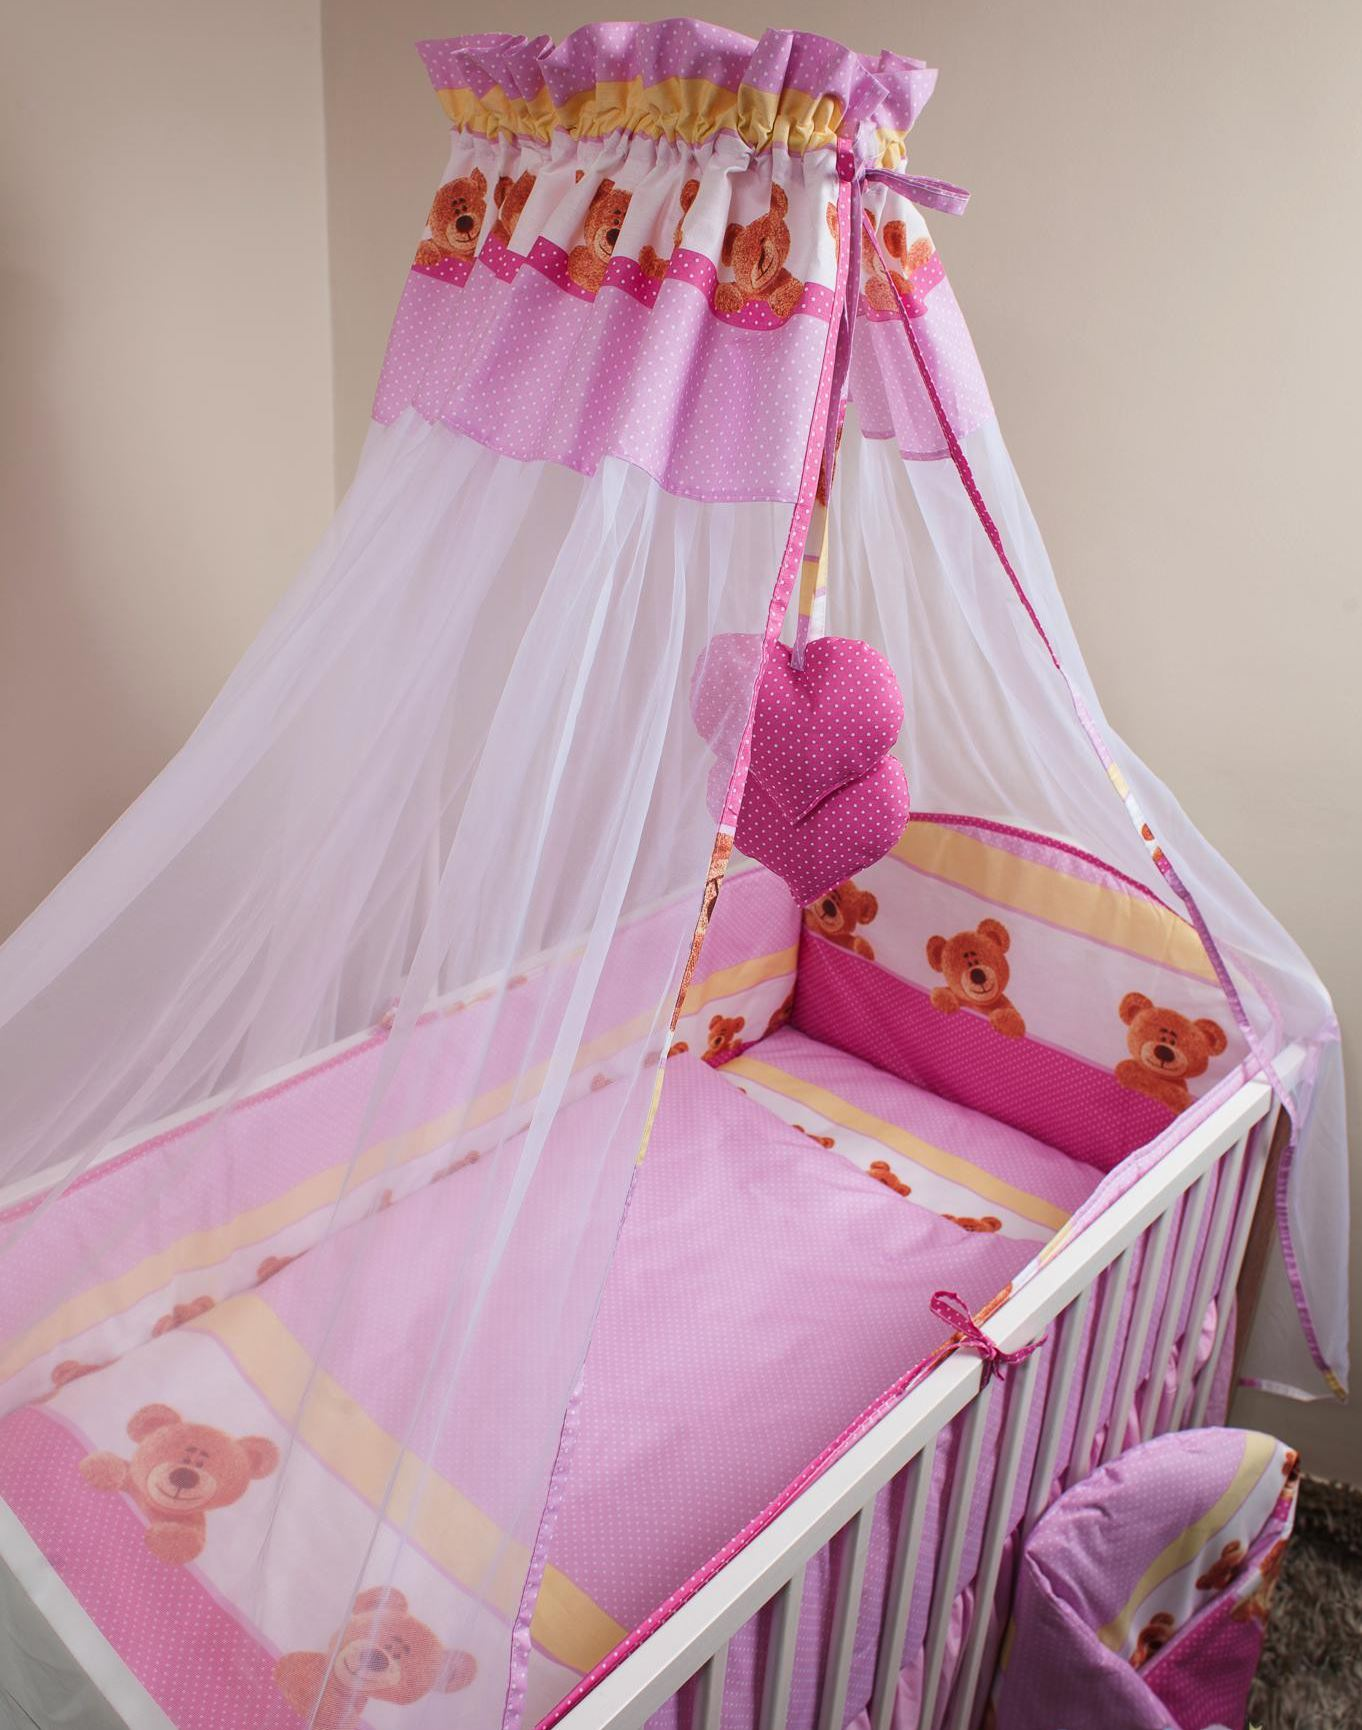 NEW-BABY-COTTON-FABRIC-CANOPY-DRAPE-HOLDER-FOR- : baby cot net canopy - memphite.com